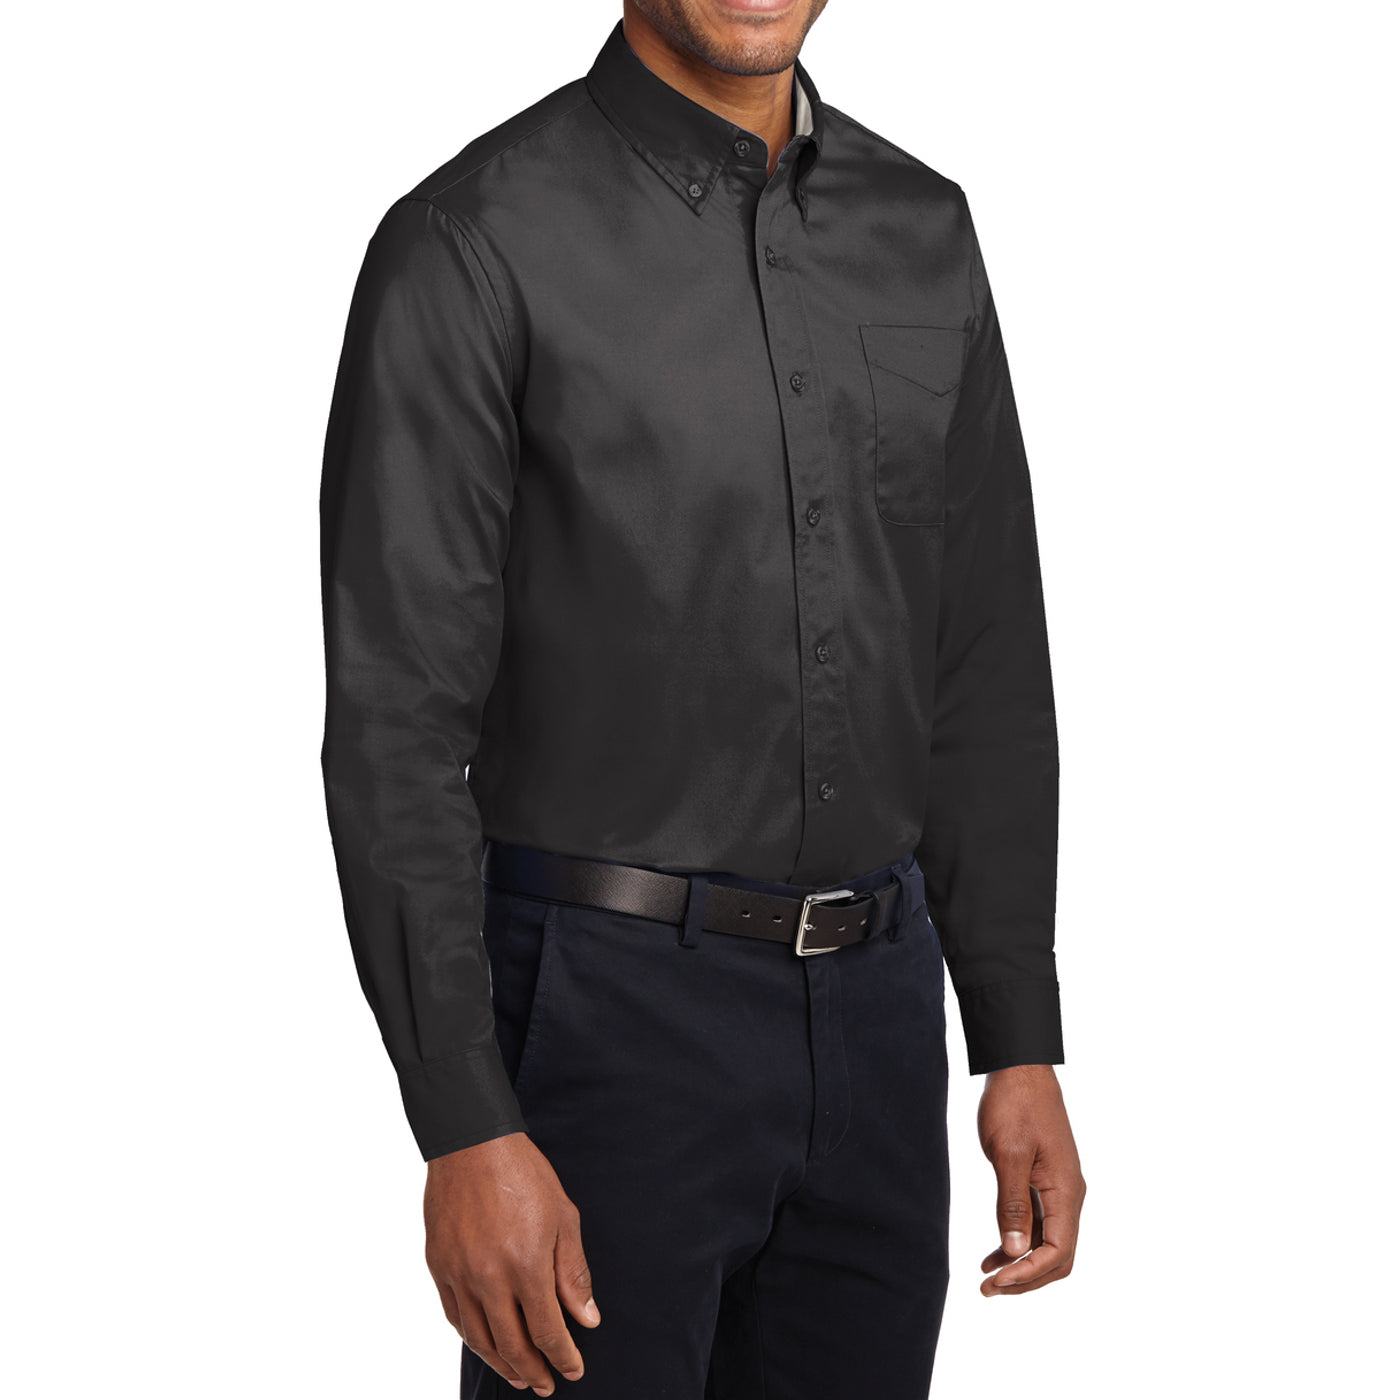 Men's Long Sleeve Easy Care Shirt - Black/ Light Stone - Side